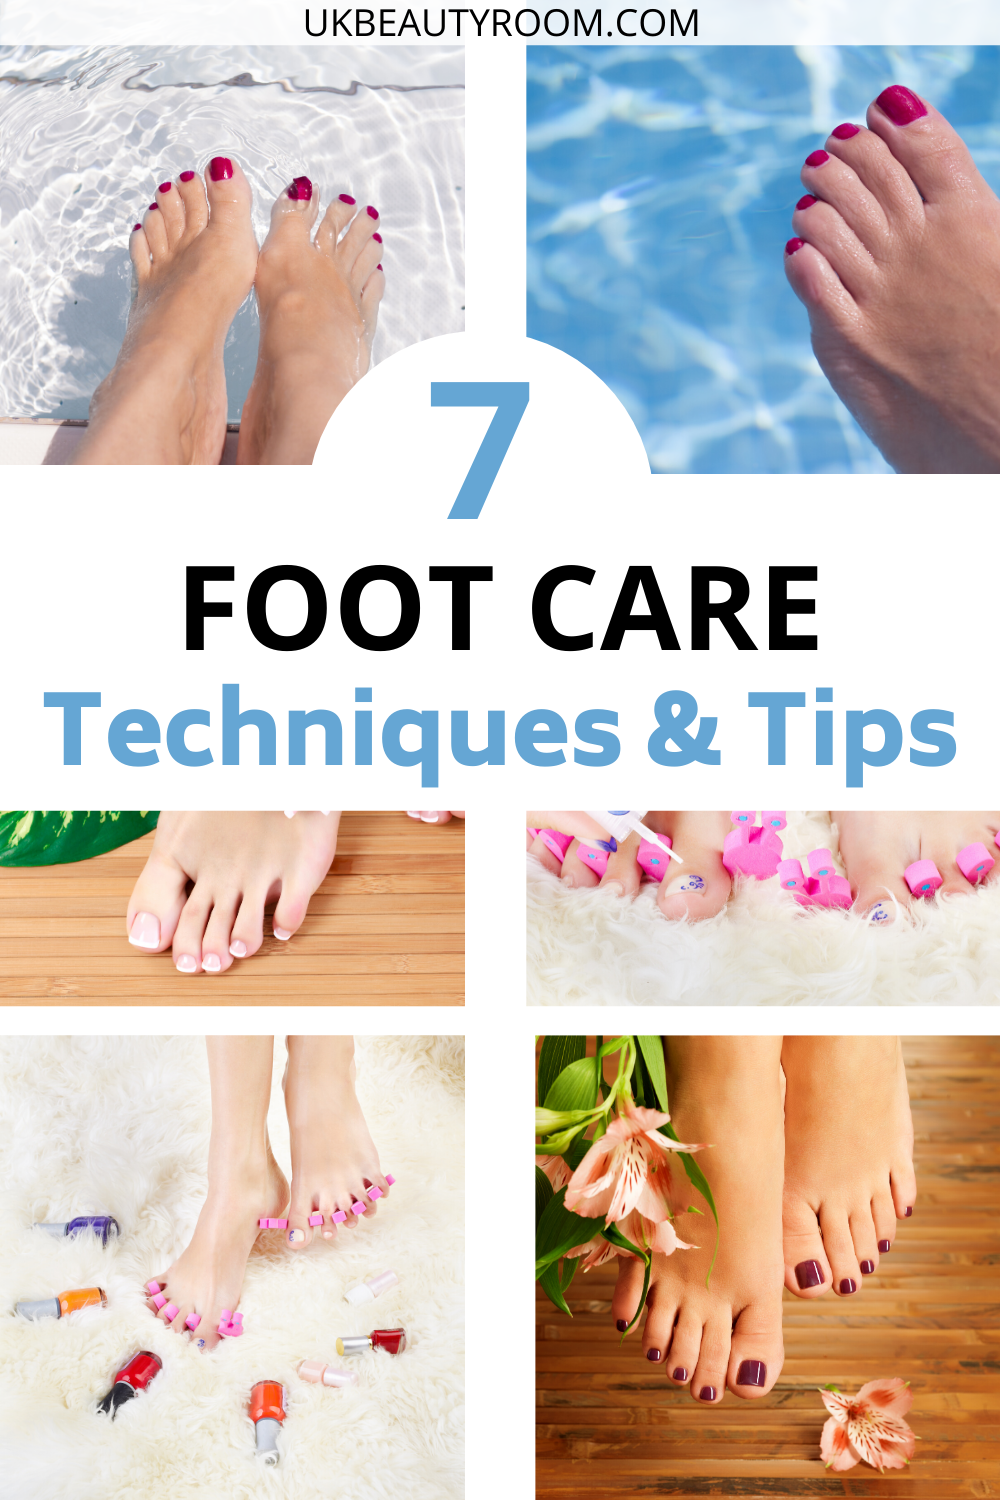 8 FOOT CARE TECHNIQUES AND TIPS FOR YOUR DIY HOME PEDICURE